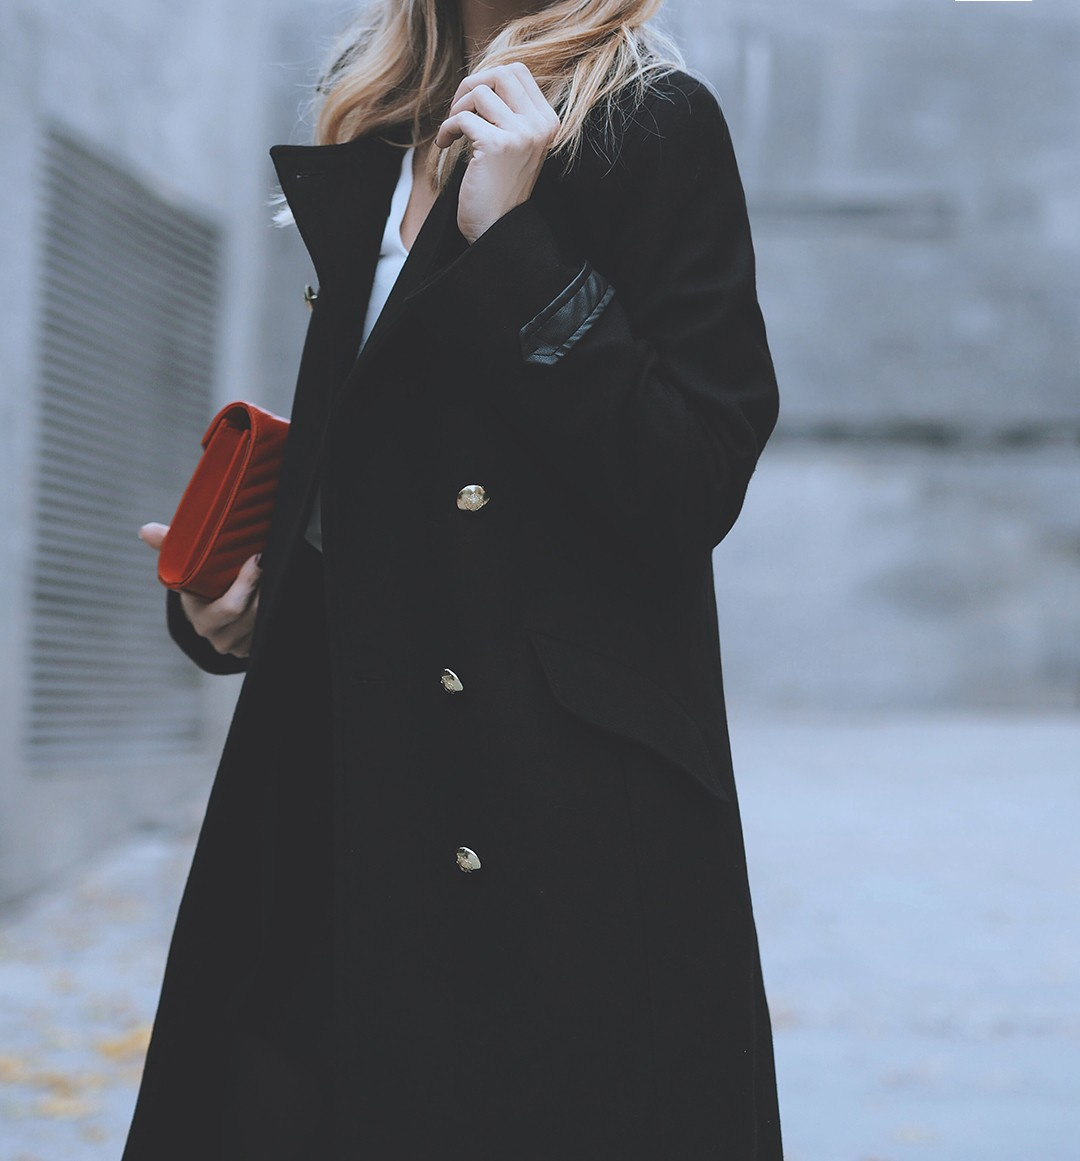 military-coat-street-style-madrid-fashion-blogger-monica-sors-formula-joven-12